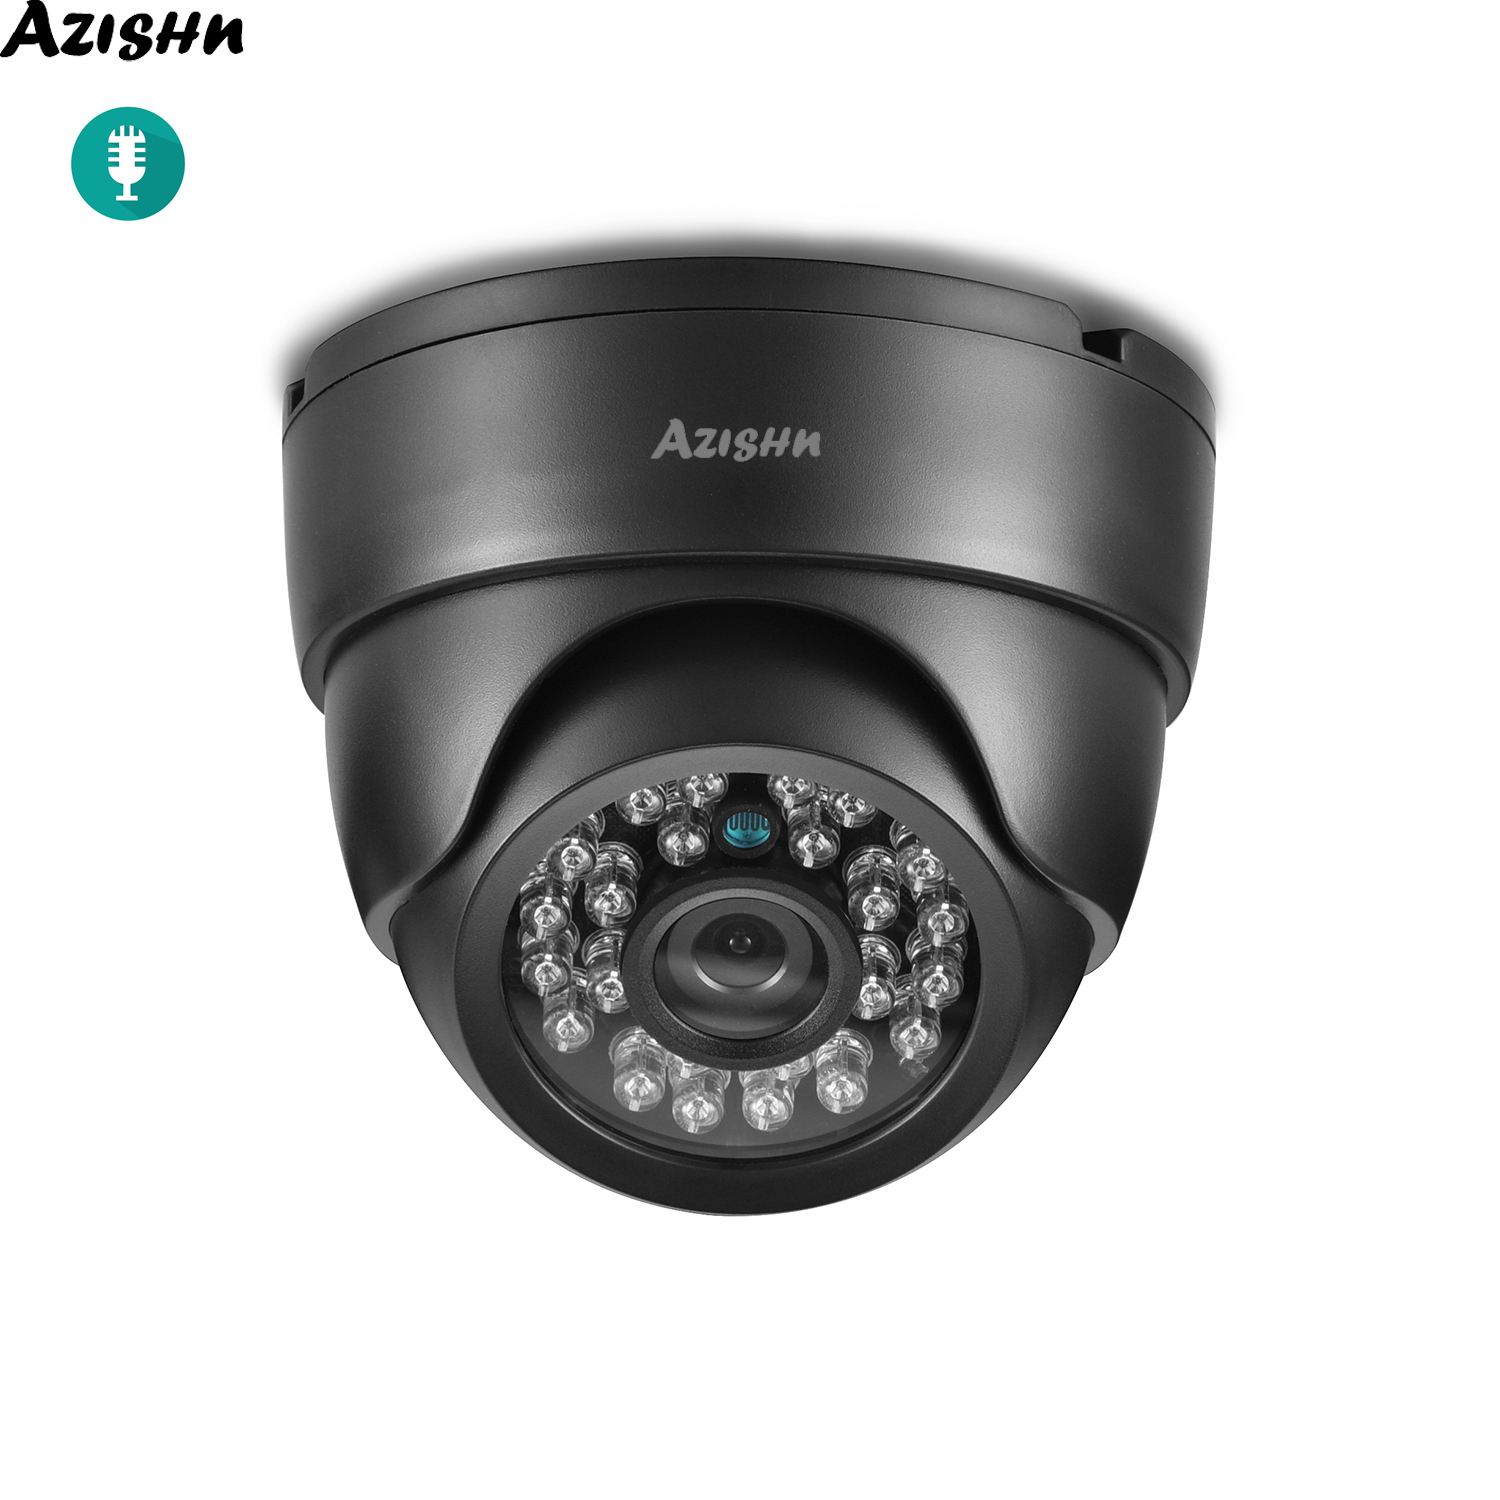 AZISHN Security Audio IP Camera <font><b>Hi3516EV300</b></font>+ SONY IMX335 5MP 4MP 1080P Indoor Night Vision CCTV Home Dome Camera ONVIF 48V POE image